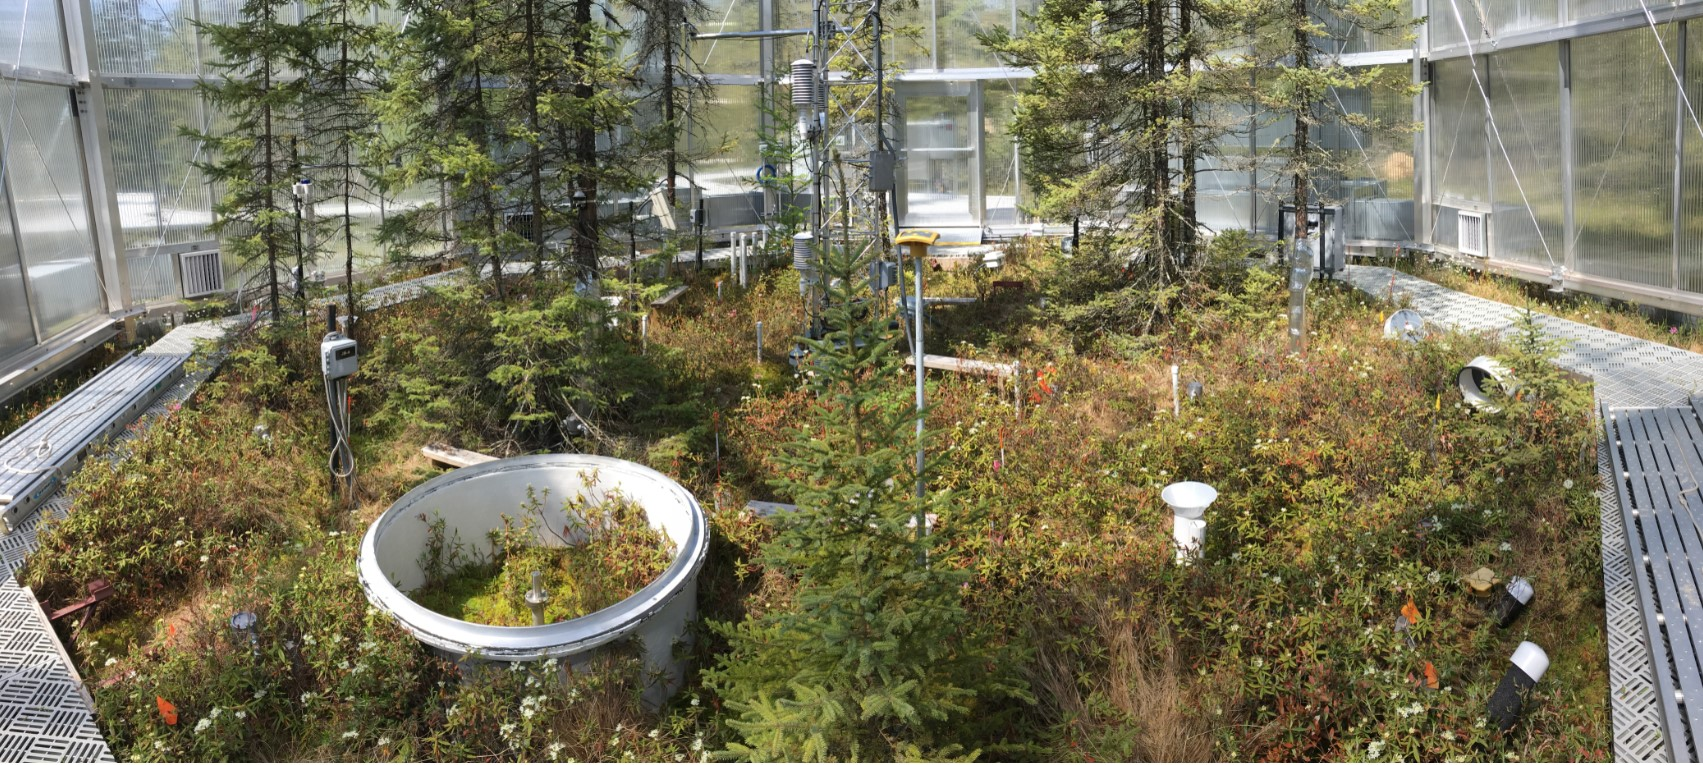 The highly instrumented SPRUCE enclosures measured the movement of carbon through peatland plots, recording that warmed peat bogs shifted from carbon accumulators to carbon emitters. Credit: ORNL, U.S. Dept. of Energy